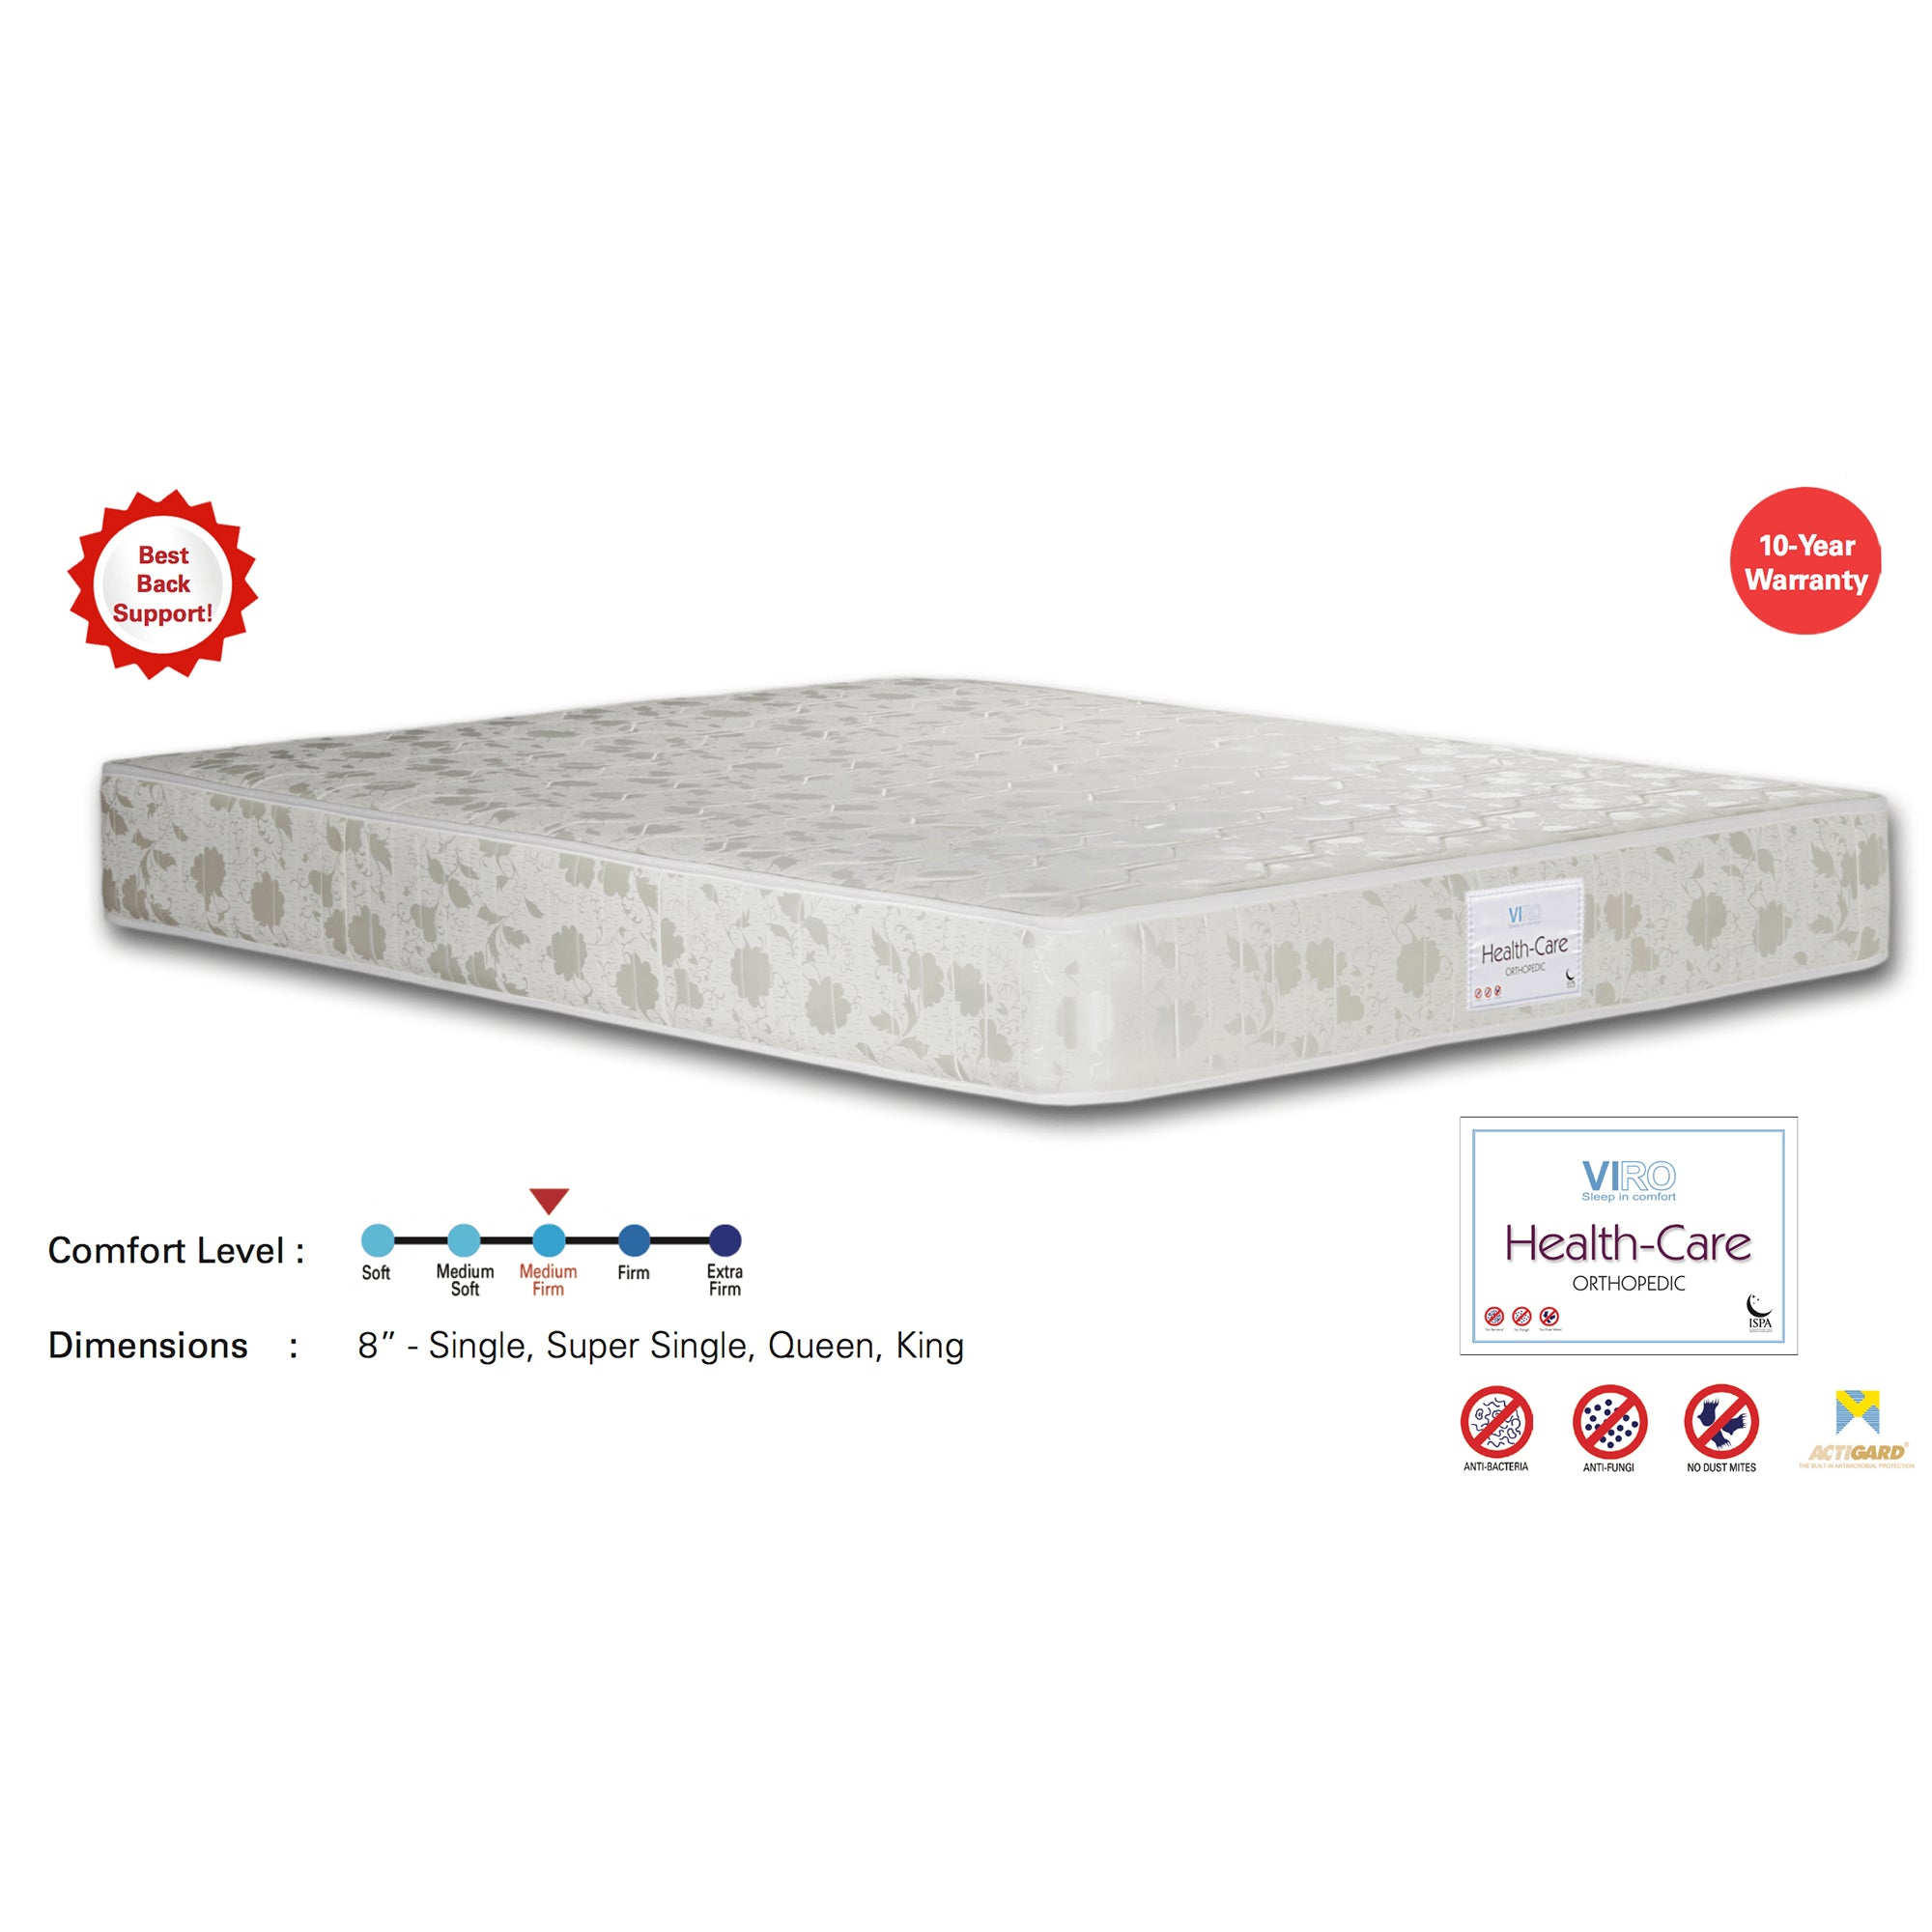 Viro Health-Care Spring Mattress (3 Feet Single Size x 8